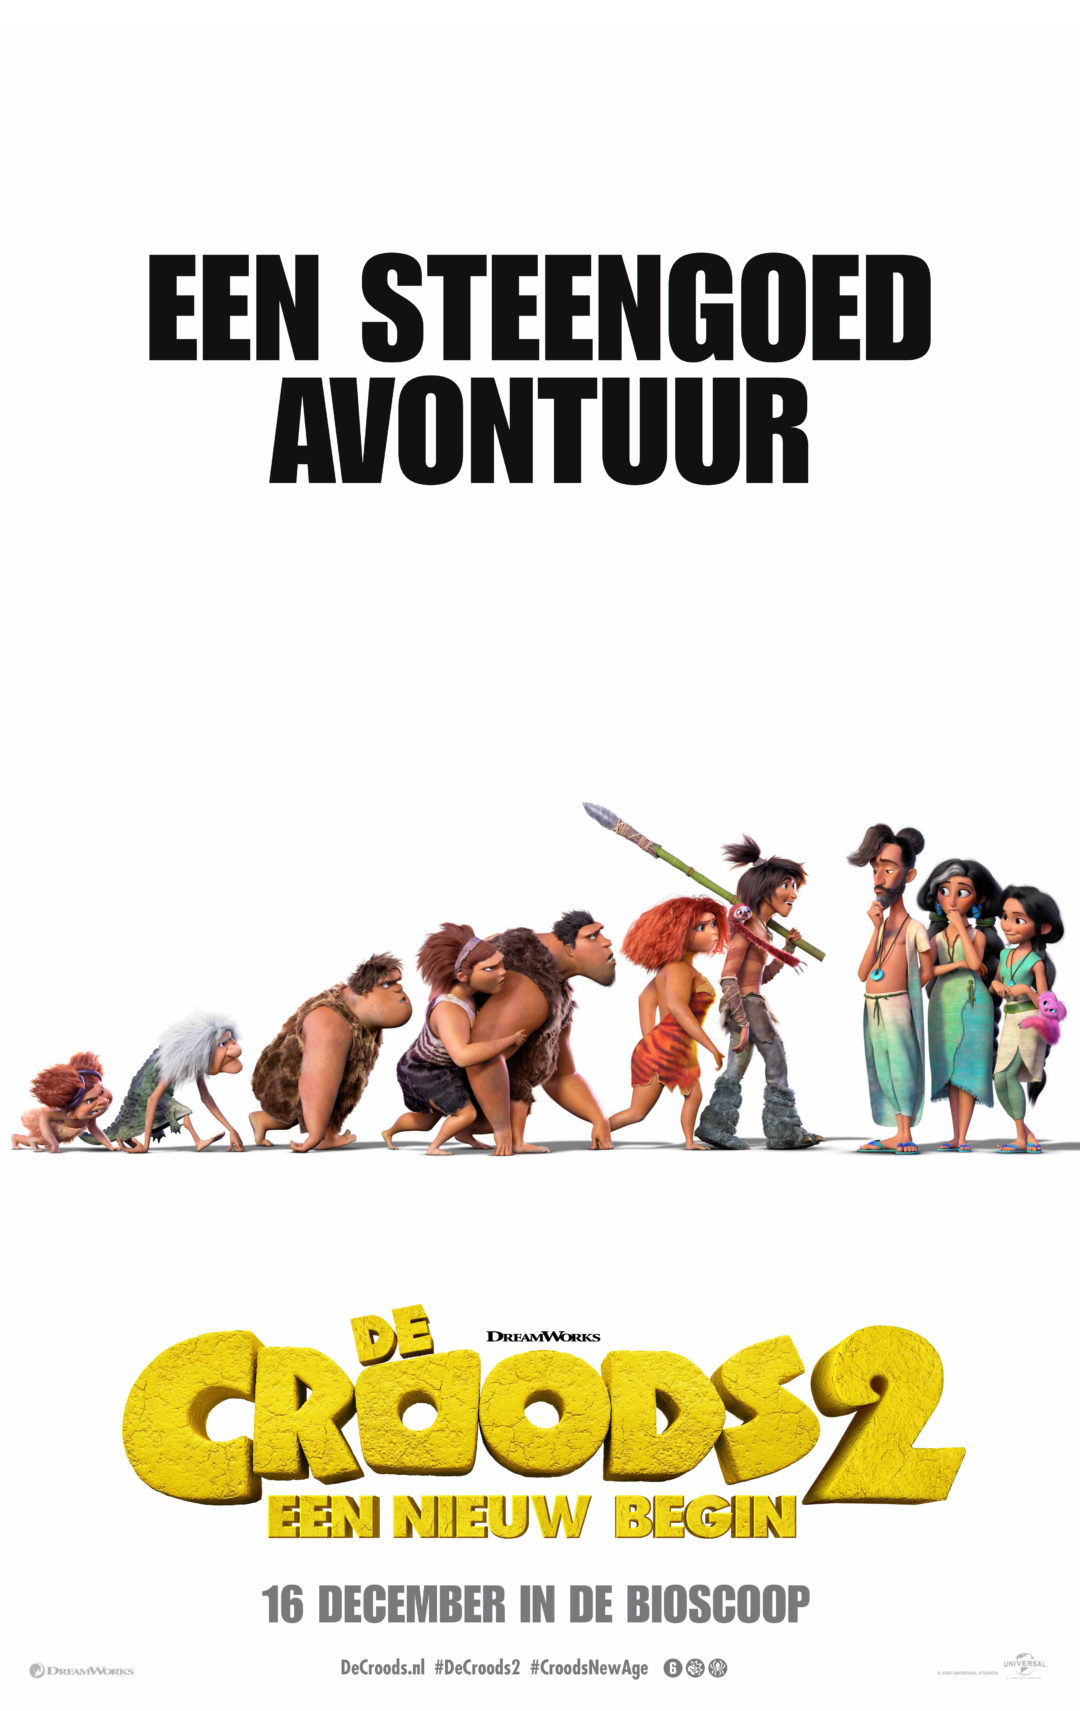 The-Croods_-A-New-Age_ps_1_jpg_sd-high_Copyright-2020-DreamWorks-Animation-LLC-All-Rights-Reserved.jpg